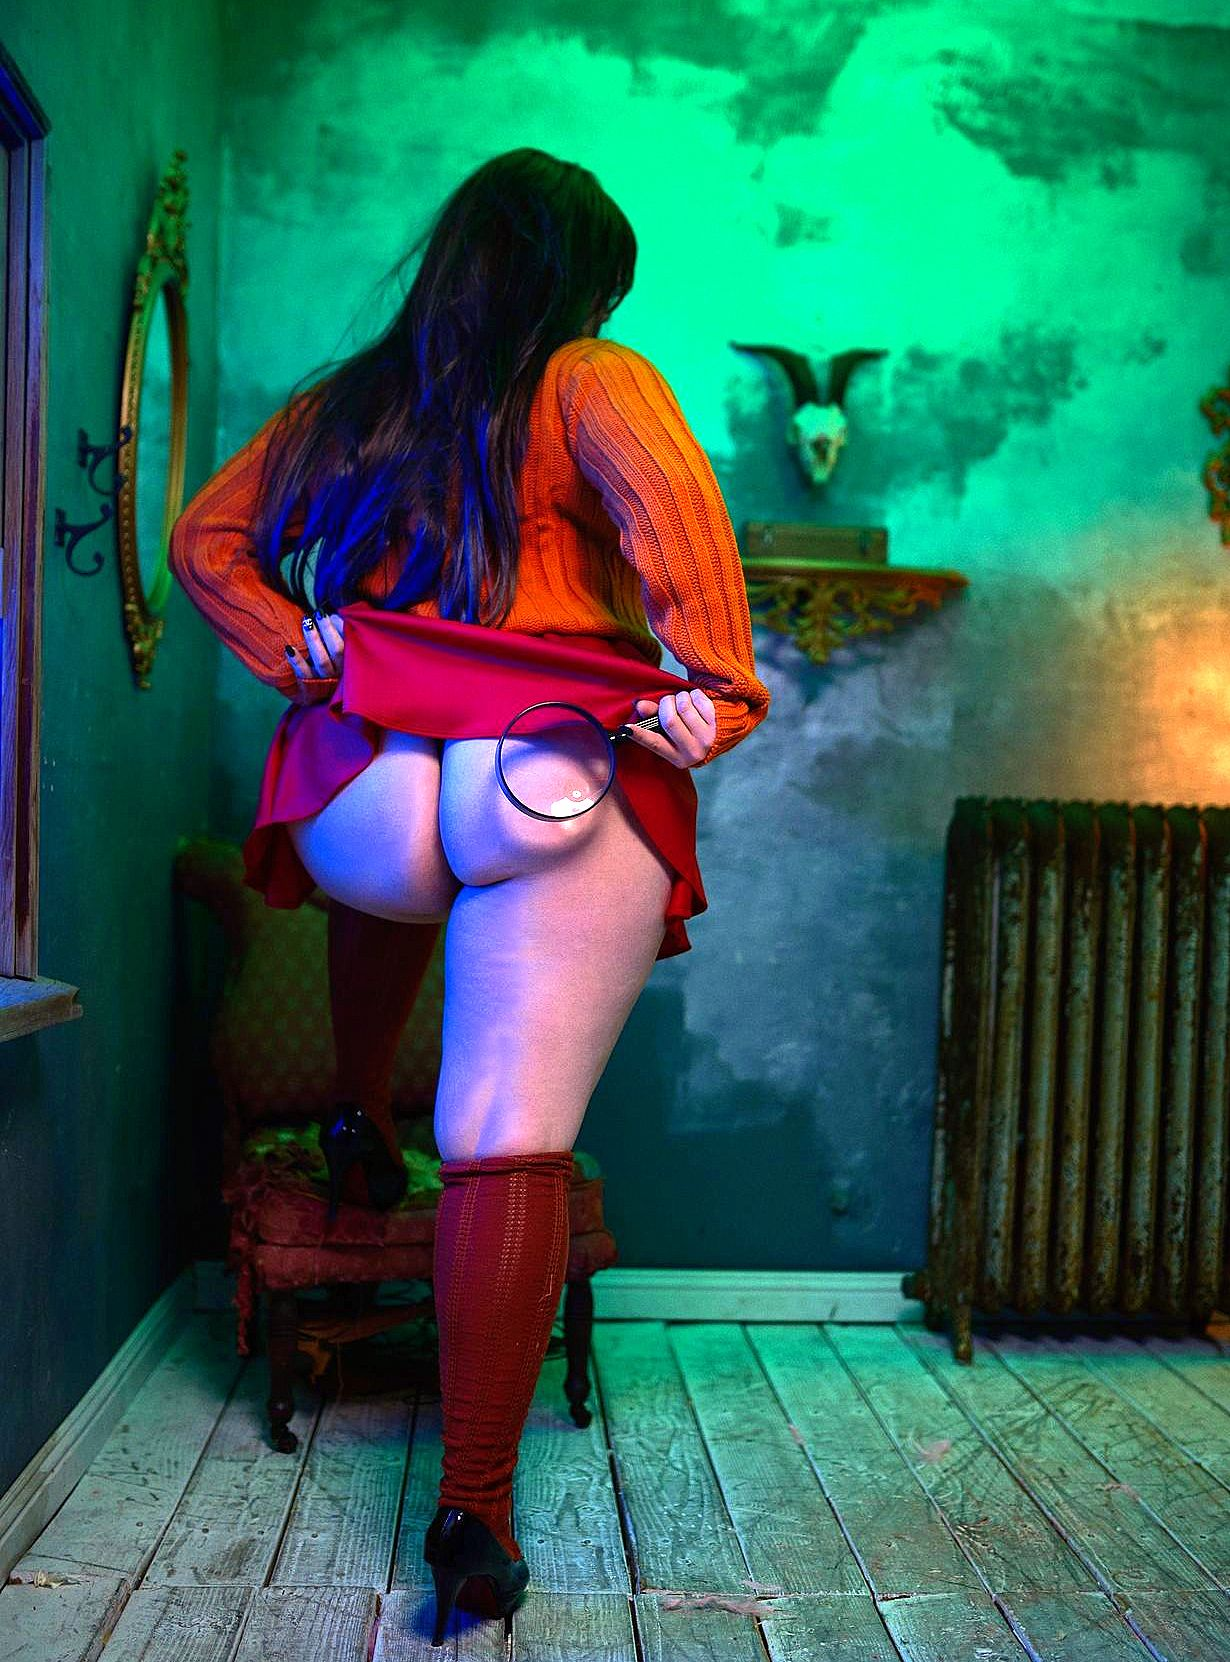 big_ass cosplay high_heels scooby-doo skirt_lift stockings thighs velma_dinkley